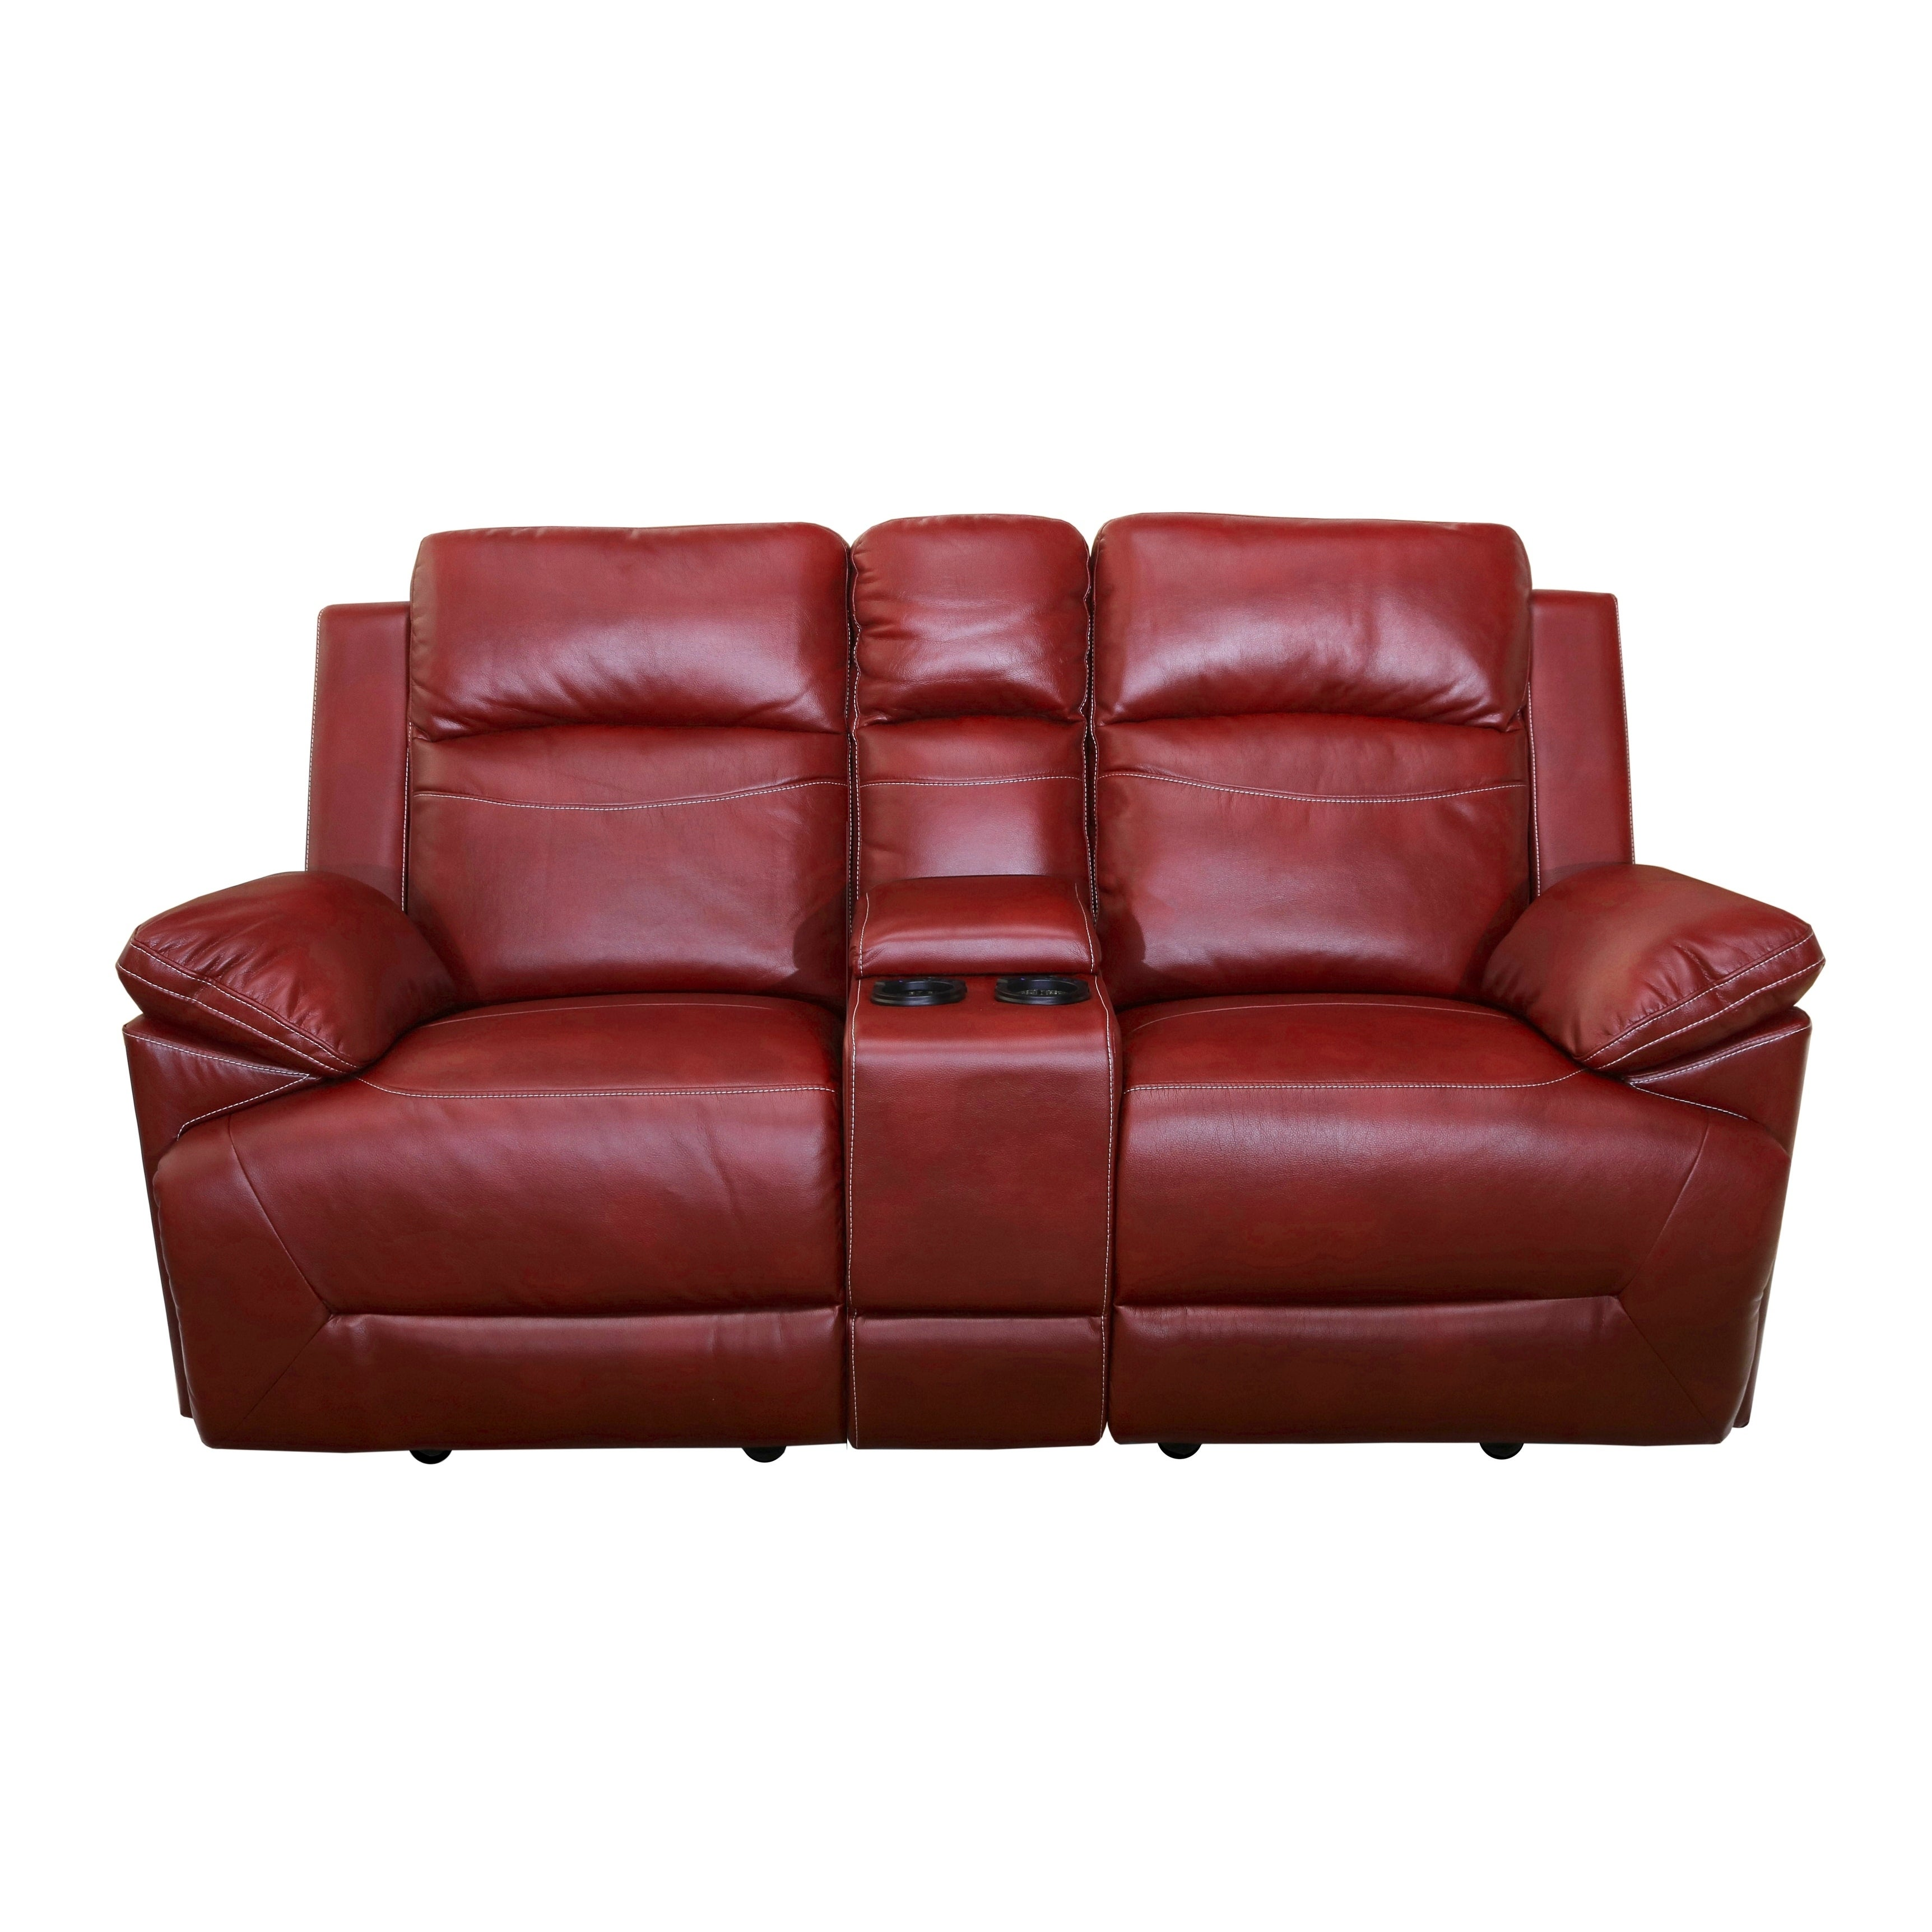 loveseat zoey products reclining item power with homeworld number console flexsteel